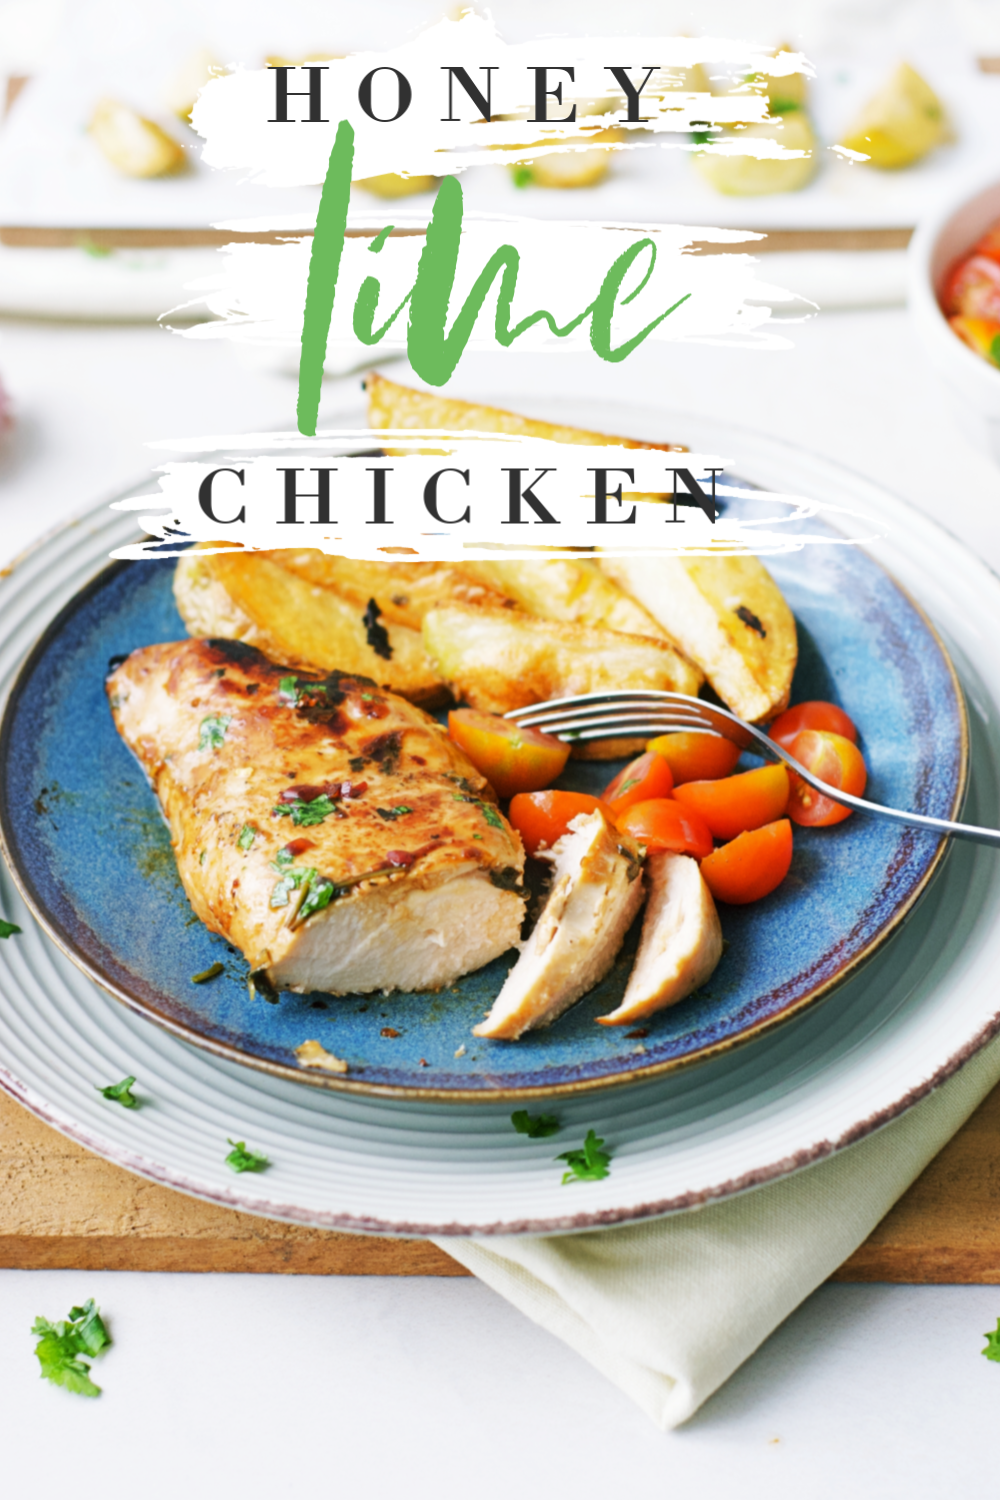 This Honey Lime Chicken recipe with cilantro, soy sauce, chili, and garlic is one of the best chicken recipes ever! It's SO DELICIOUS! The honey lime chicken marinade infuses the chicken with fresh, savory flavors and makes it truly juicy and moist! #chickenrecipes #chicken #cilantro #honey #lime #honeylimechicken